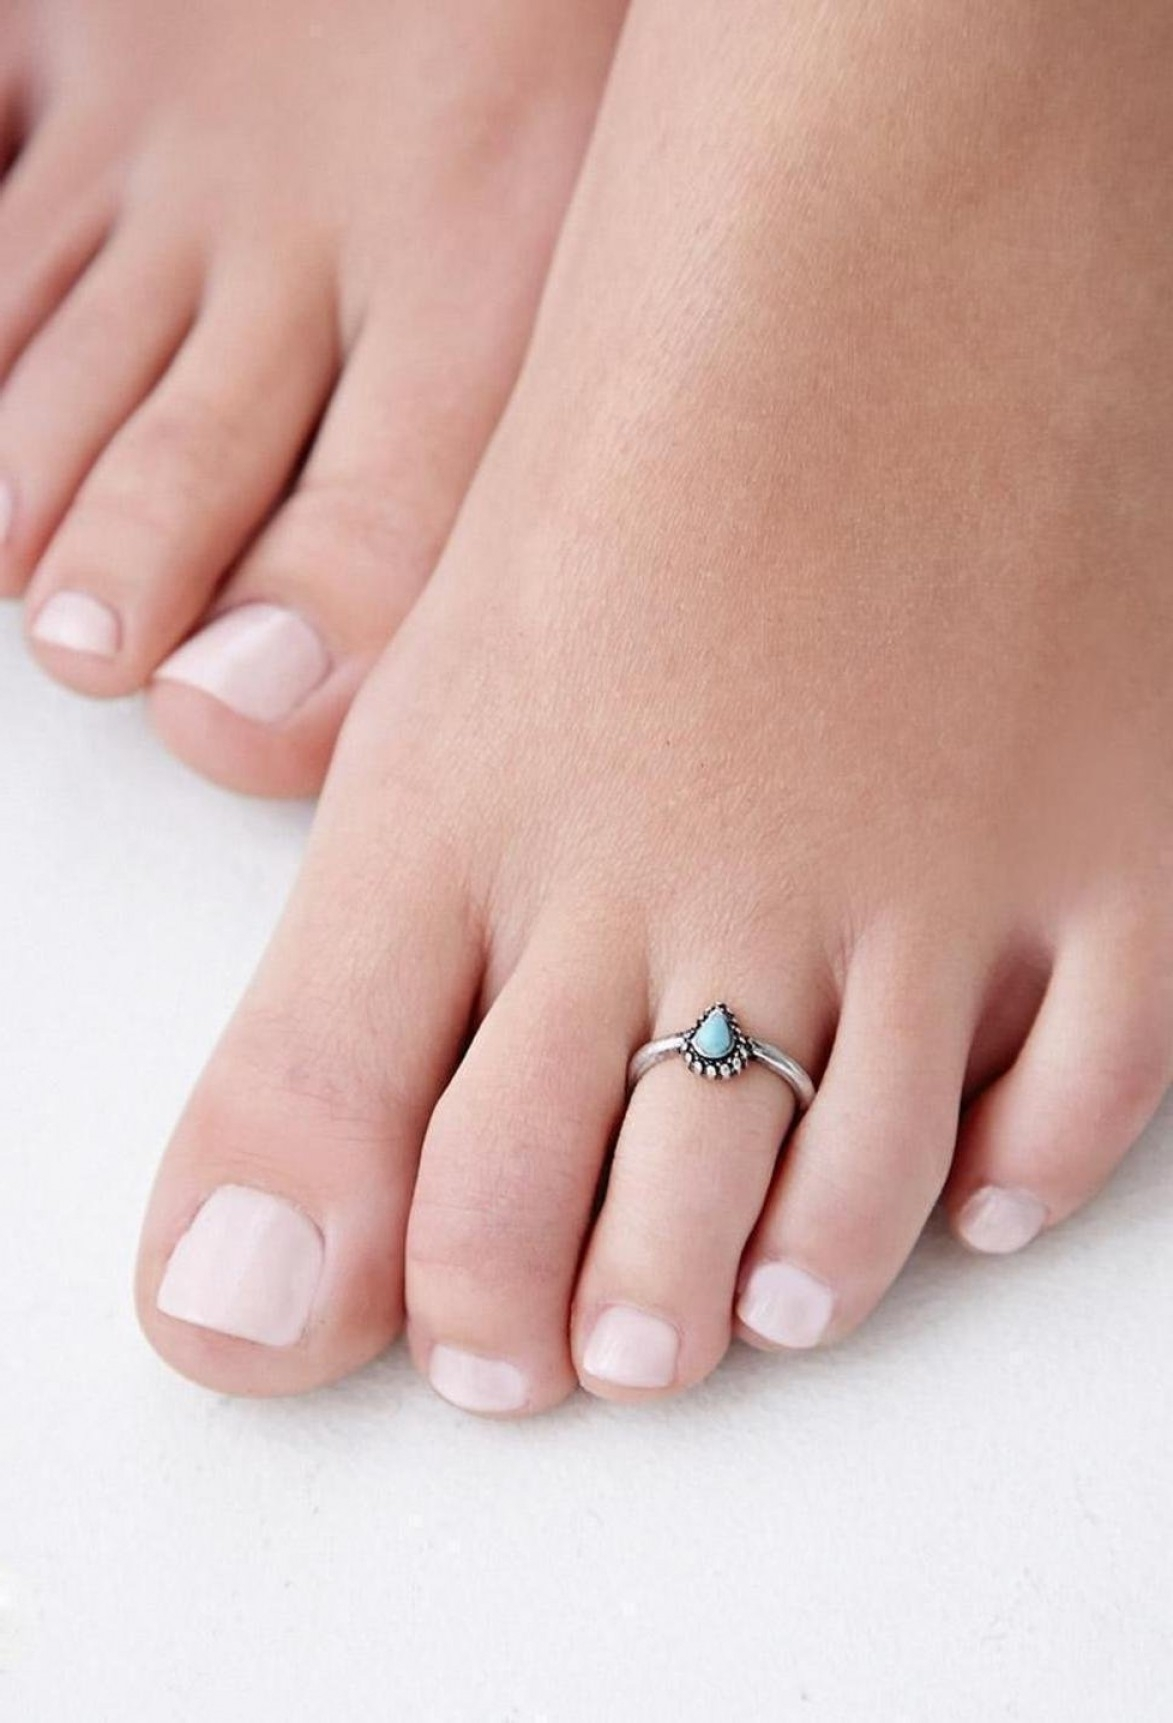 Affordable & Comfortable Toe Rings For Women | Trends4Us Intended For Current Cute Toe Rings (View 2 of 15)